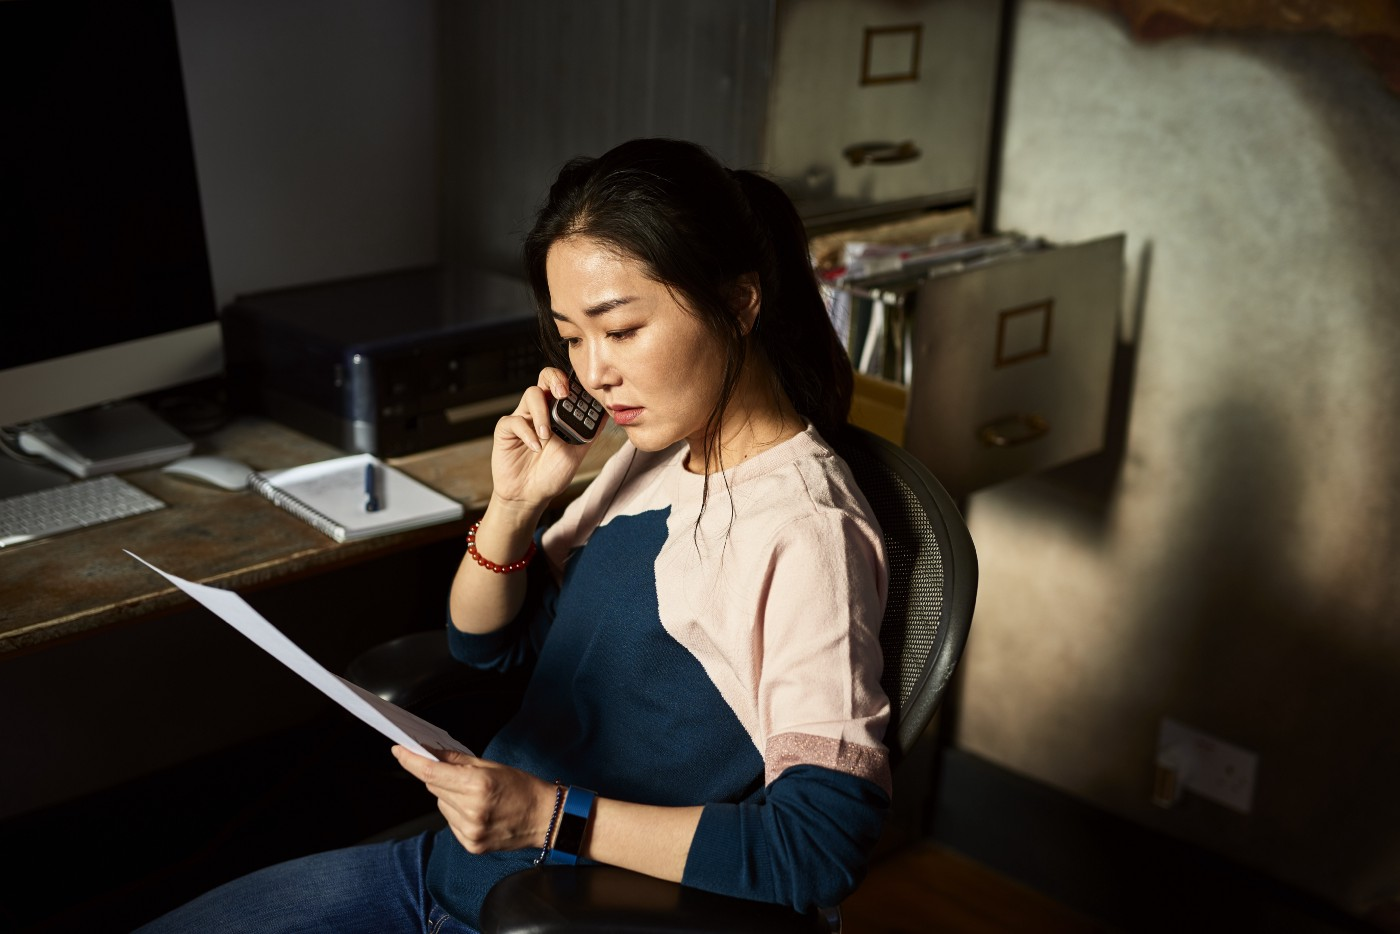 A woman looks serious as she listens on the phone while holding paperwork and sitting in an office chair.